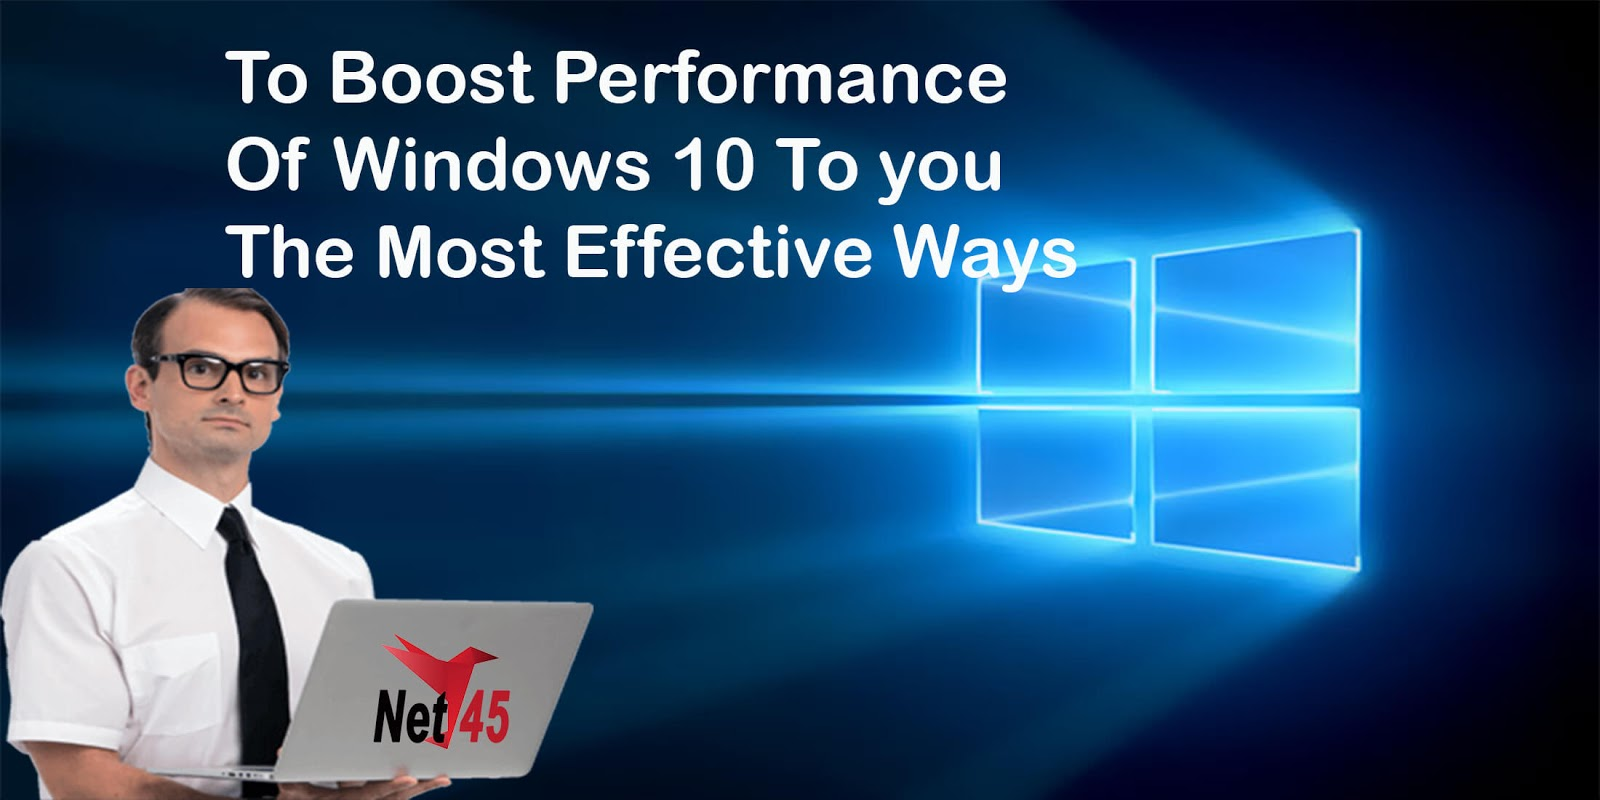 how to speed up windows 10,windows 10,how to boost your fps,how to boost fps in fortnite,how to make windows 10 faster,how to get more fps,boost pc performance,how to get more fps in games,how to boost pc performance windows 10,how to boost gaming performance on windows 10,how to,make windows 10 faster,how to boost pc performance windows 7,faster windows 10,windows 10 tutorial